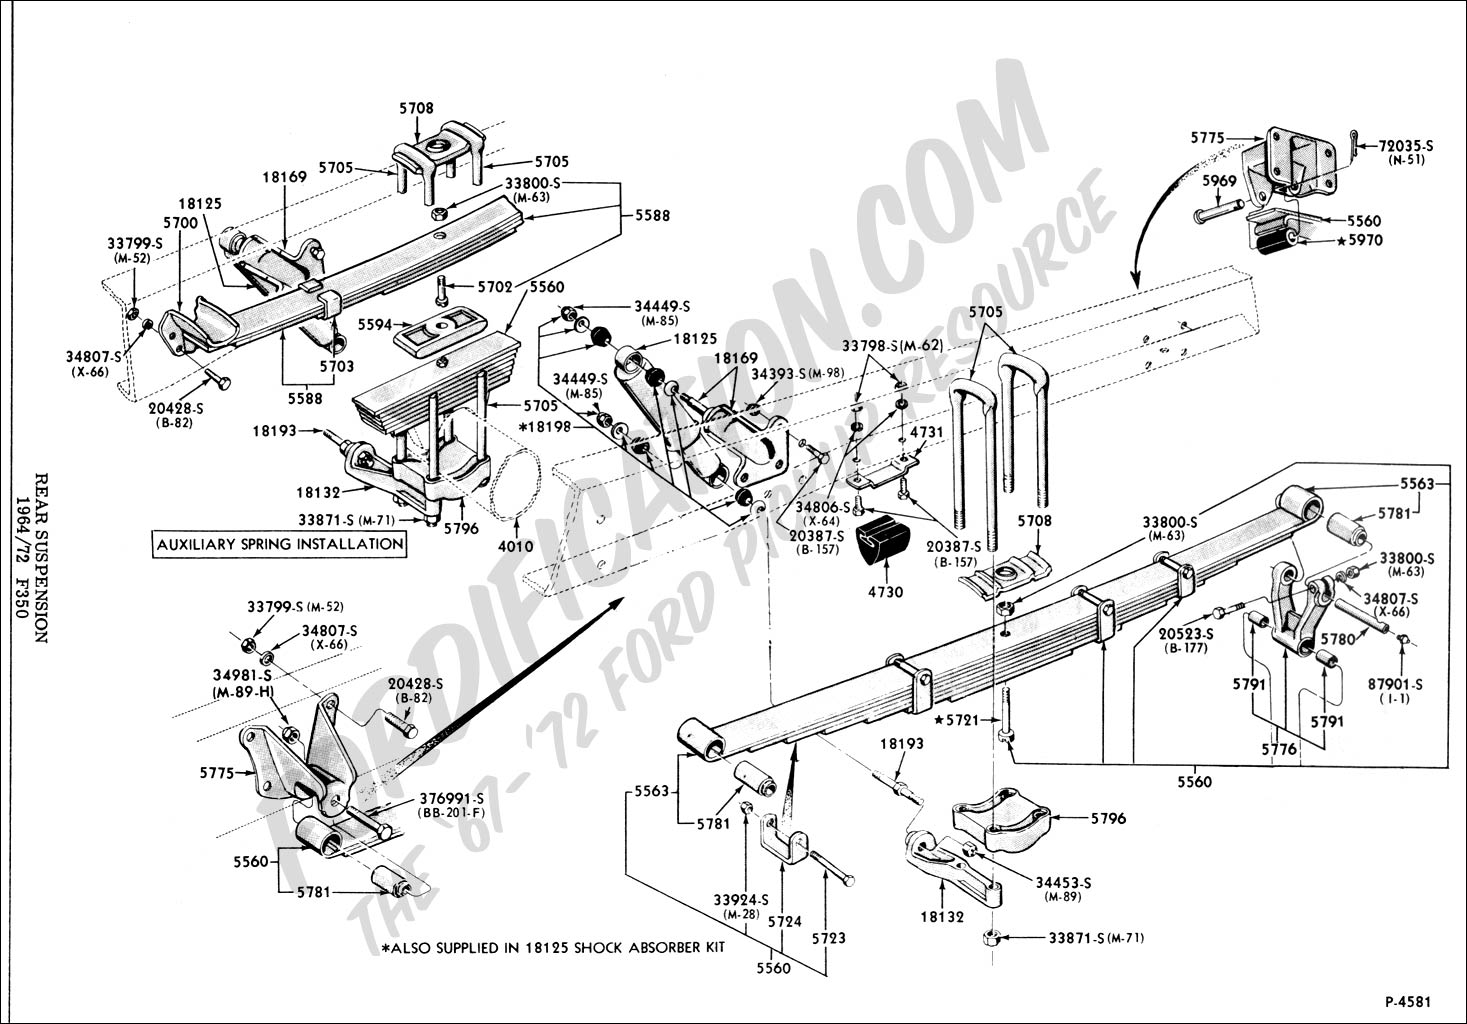 2002 ford f 150 ignition wiring diagram ford truck technical drawings and schematics section a